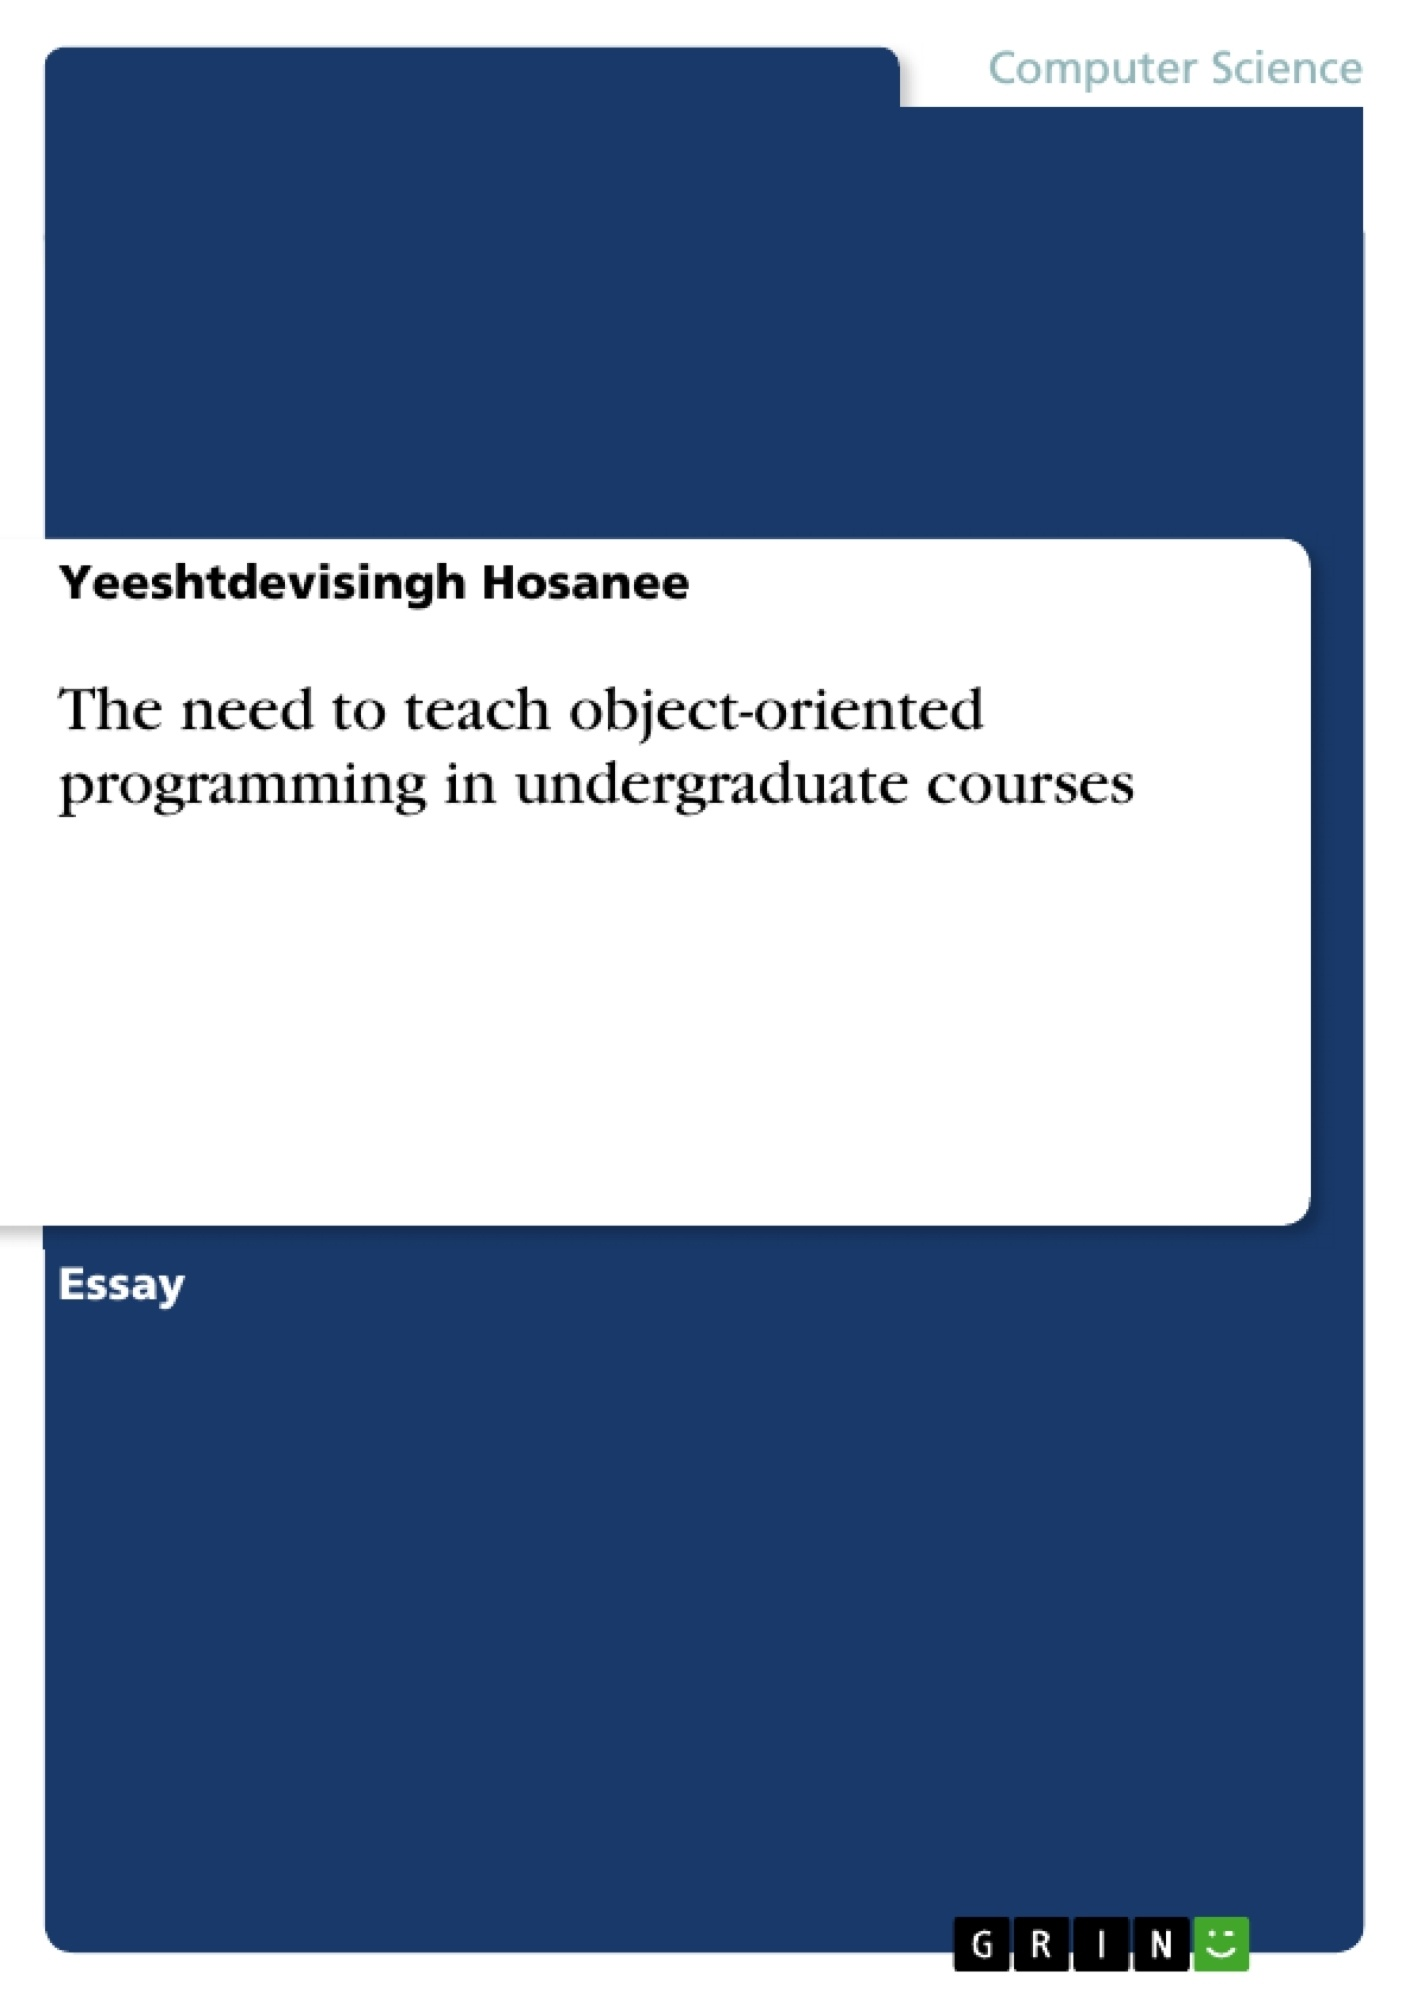 Title: The need to teach object-oriented programming in undergraduate courses